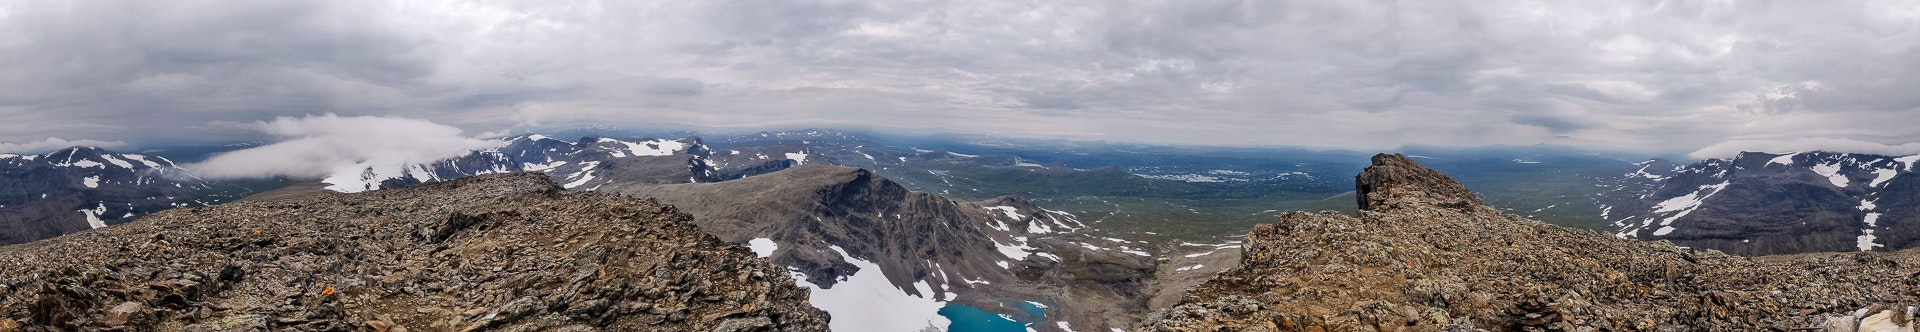 Panorama from the top of Norra Sytertoppen